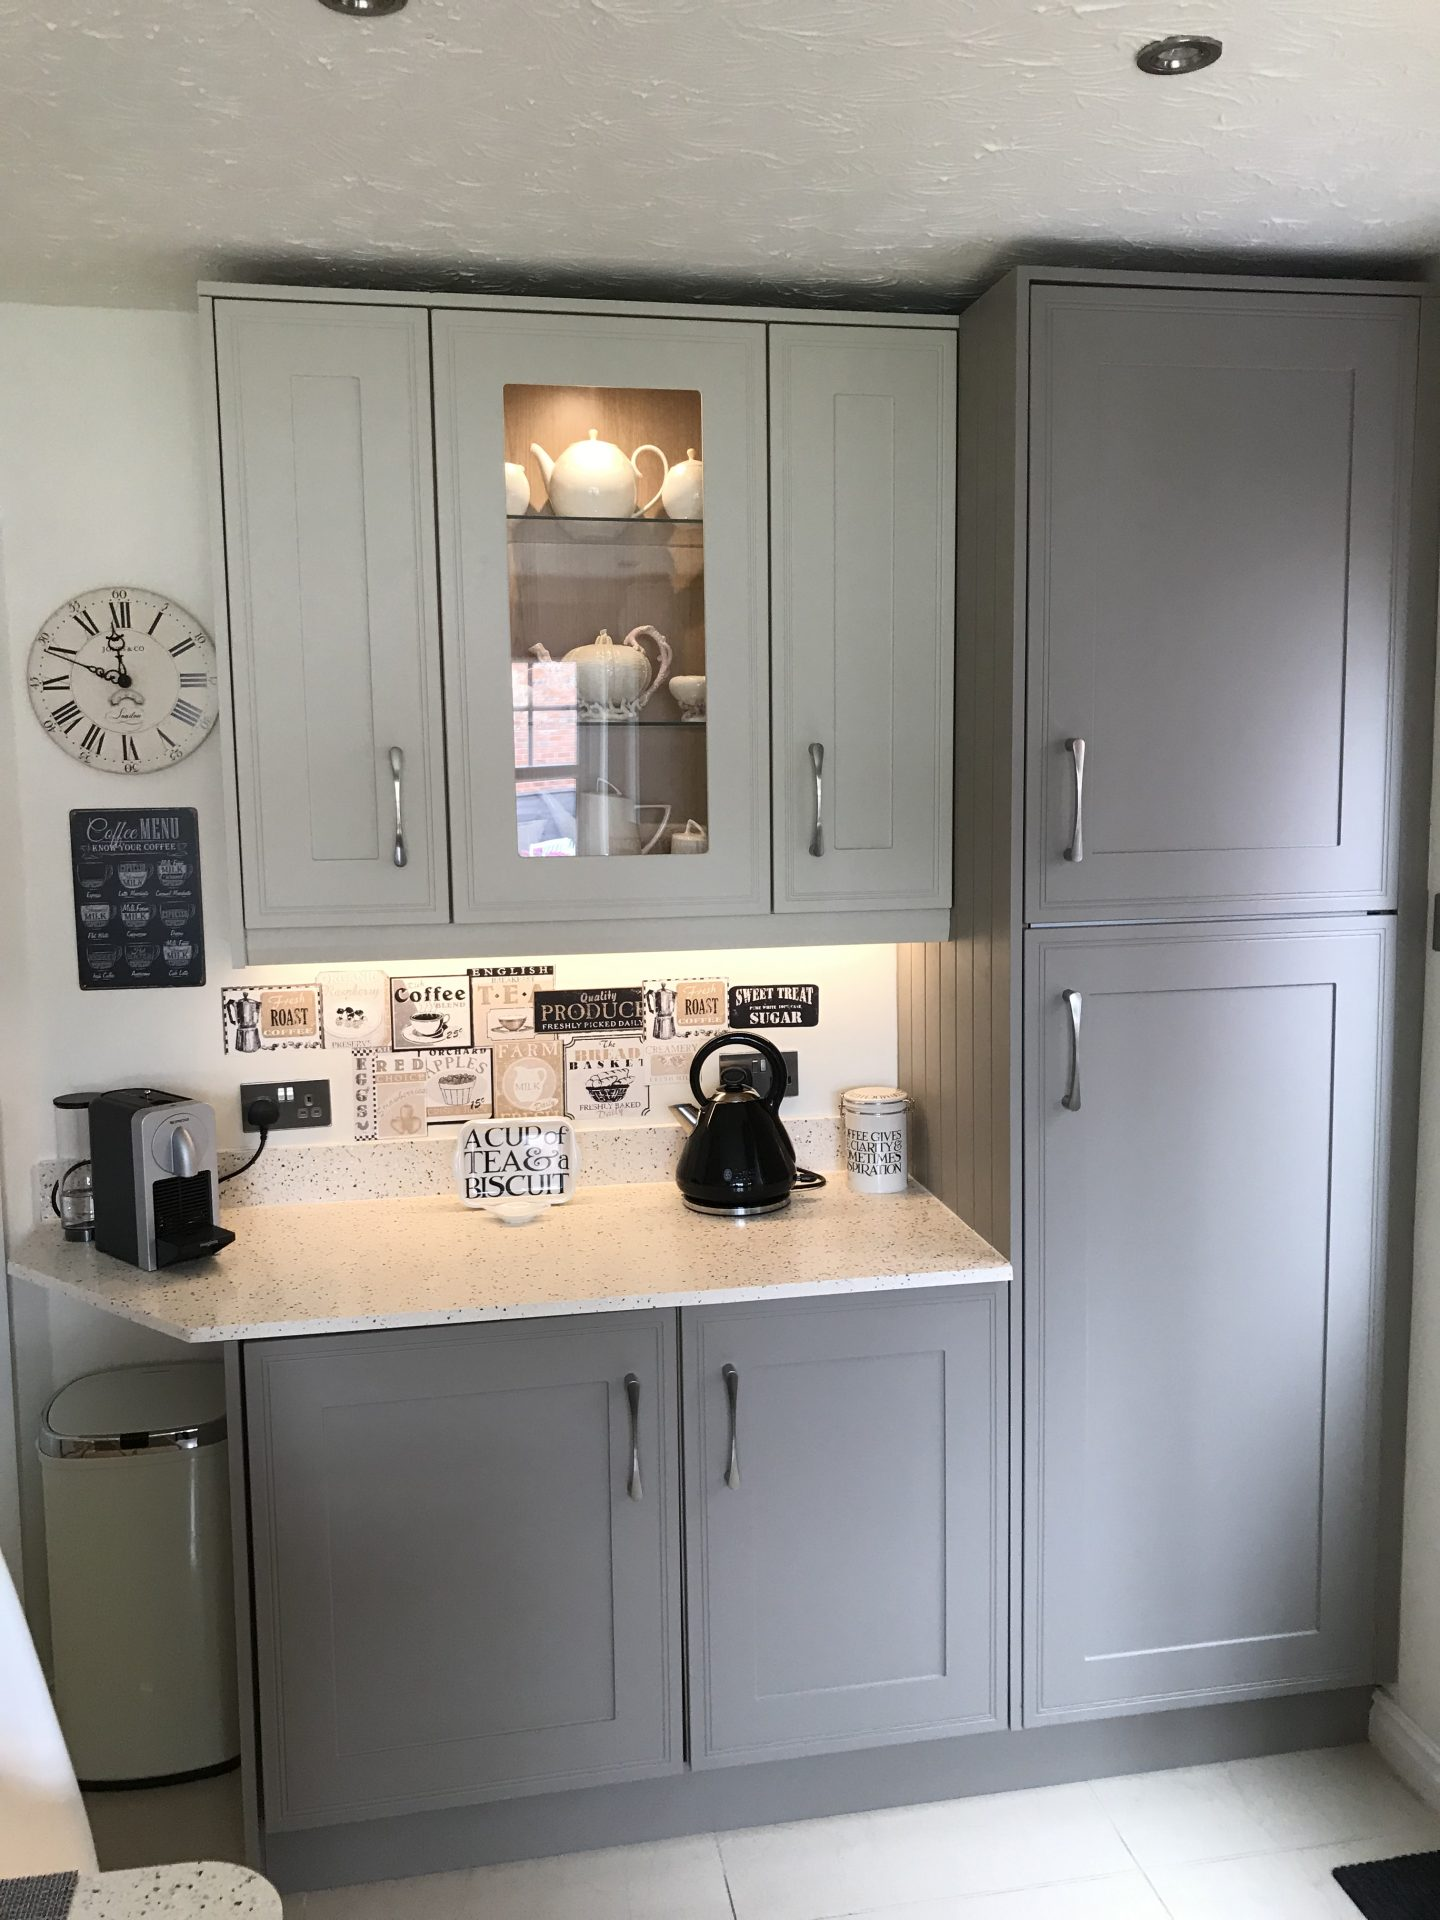 Classic Kitchen Installation with glass cabinets - St Georges Telford Shropshire